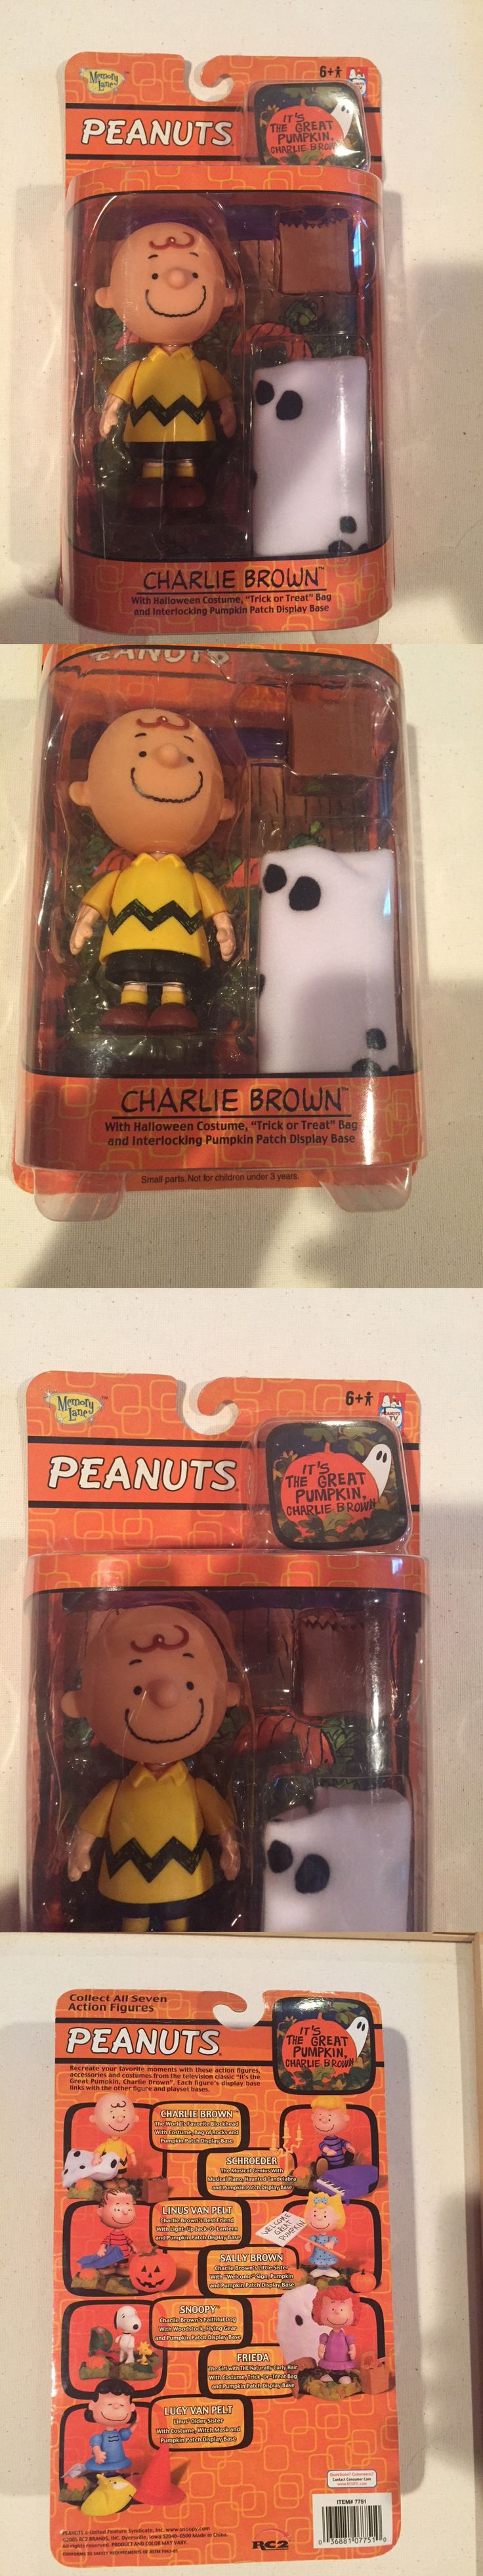 Peanuts Gang 773: Its The Great Pumpkin Charlie Brown - Charlie Brown Figurine With Costume 2005 -> BUY IT NOW ONLY: $35 on eBay!